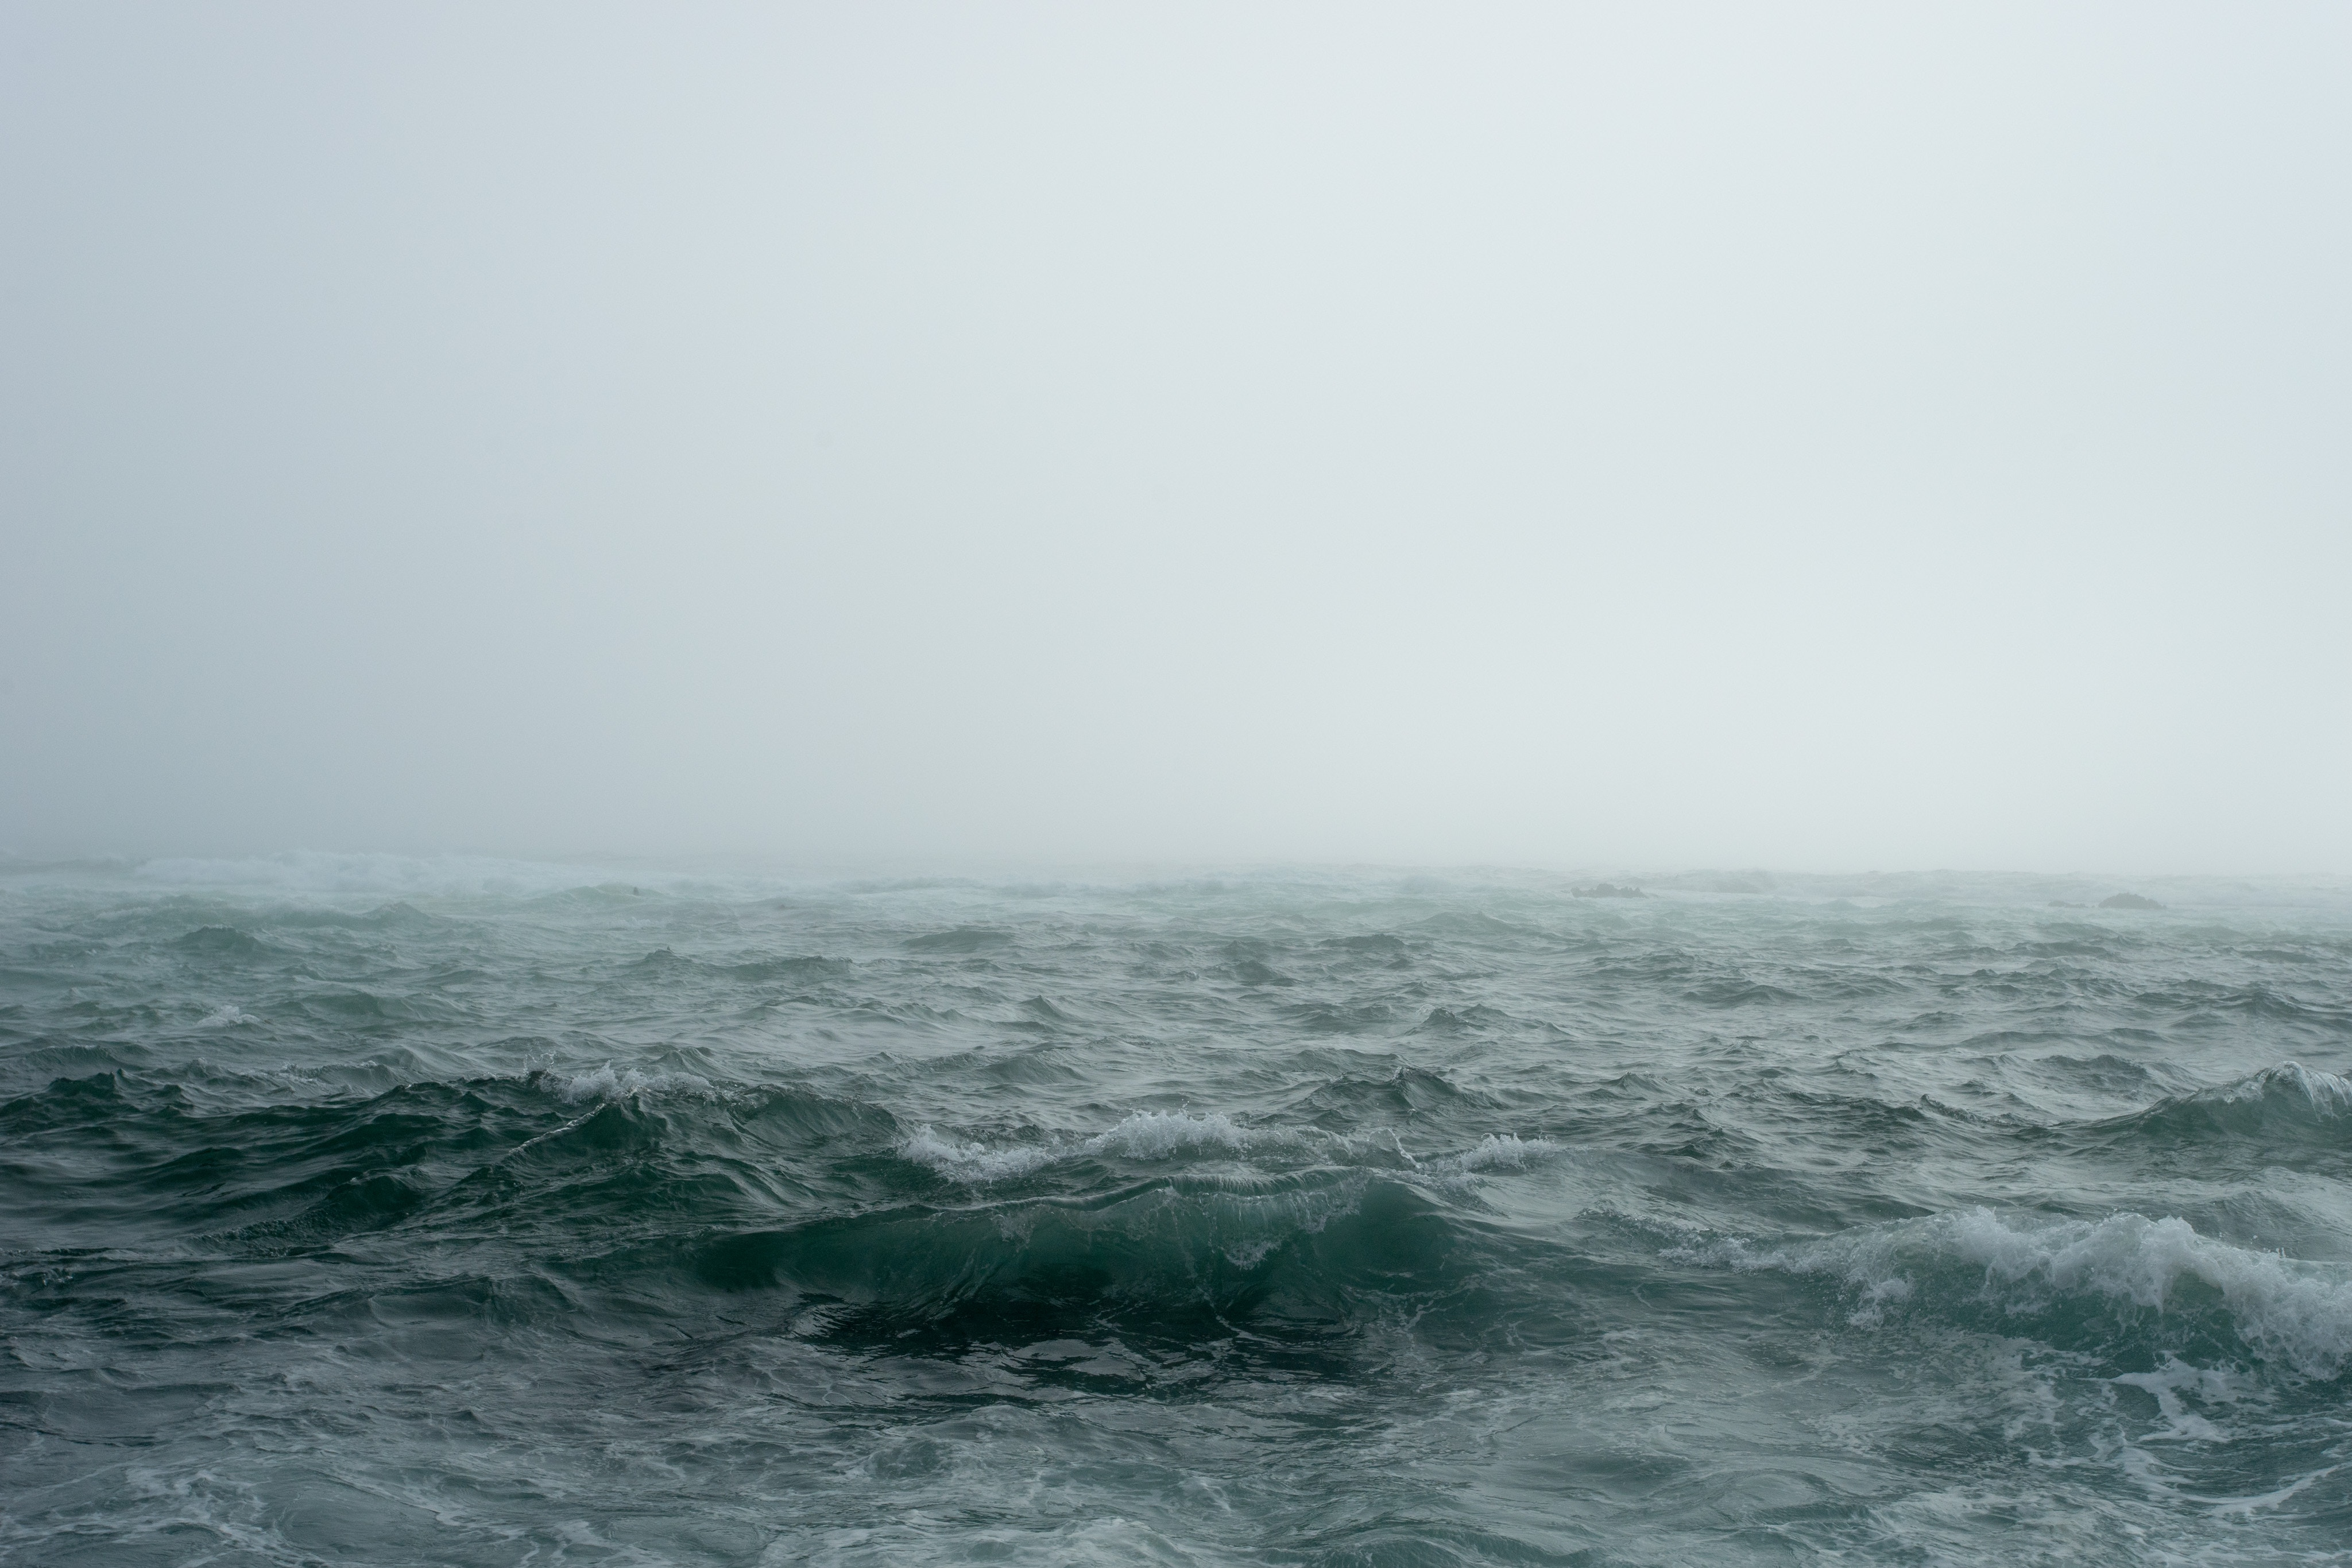 A picture of a grey sea